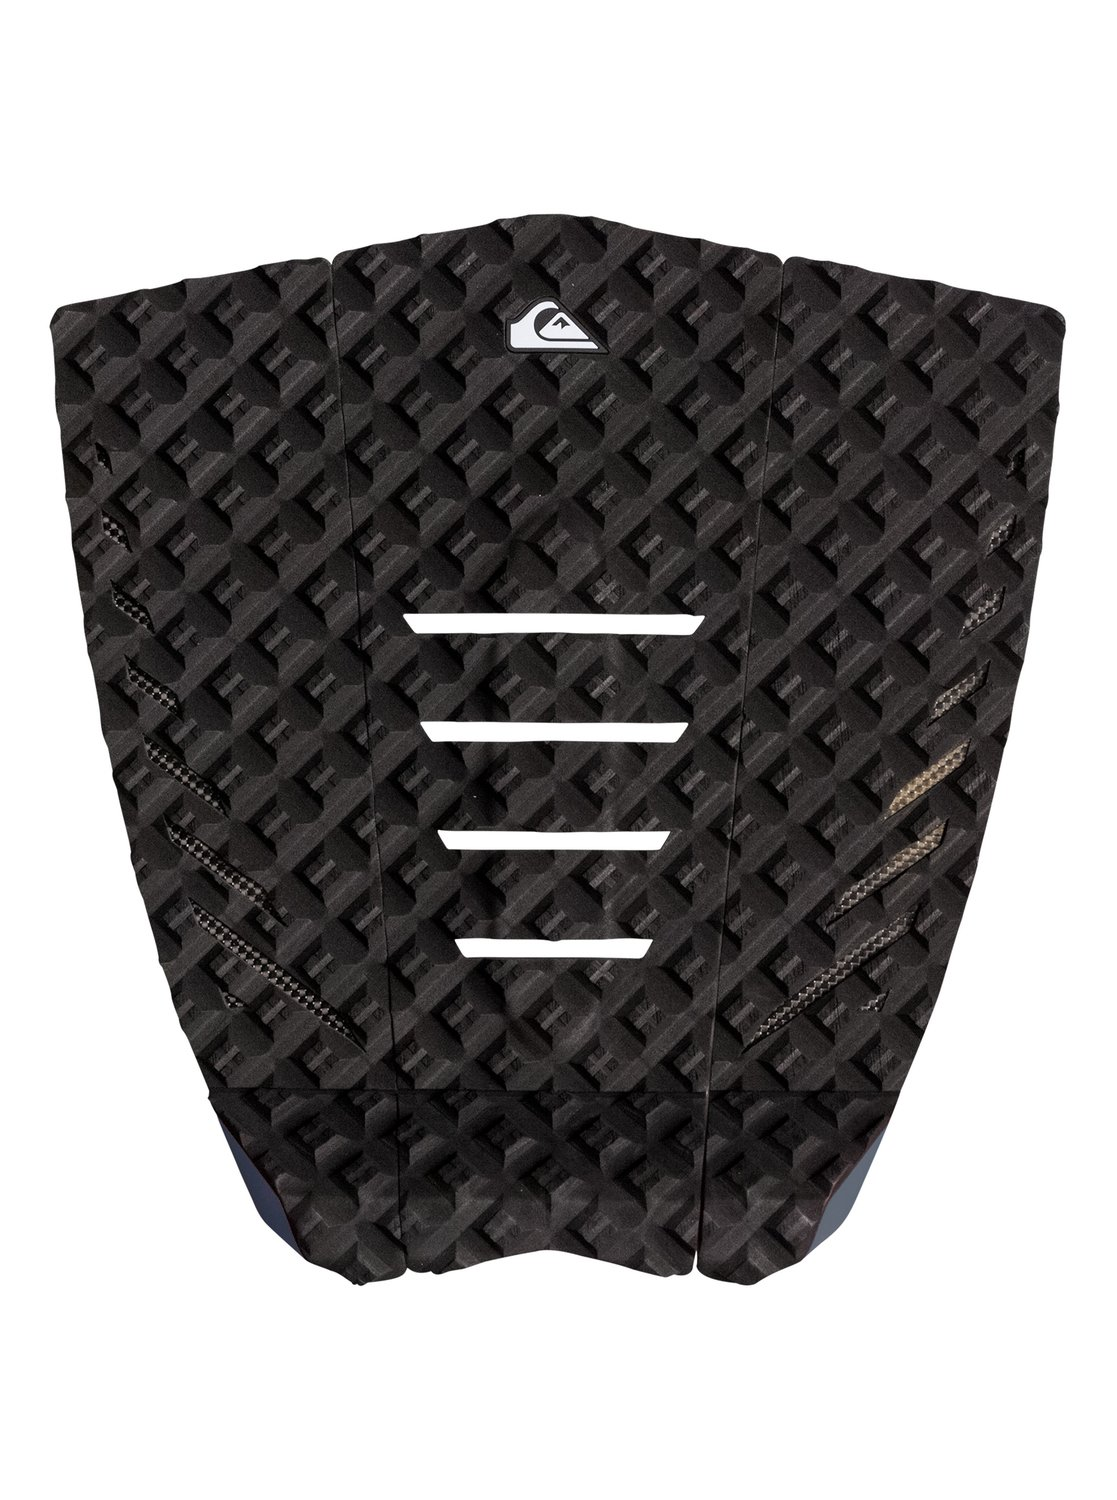 Fitness, Aerobics Bodybuilding & Gymnastics|Water Sports|Surfing CARBON PAD LC6